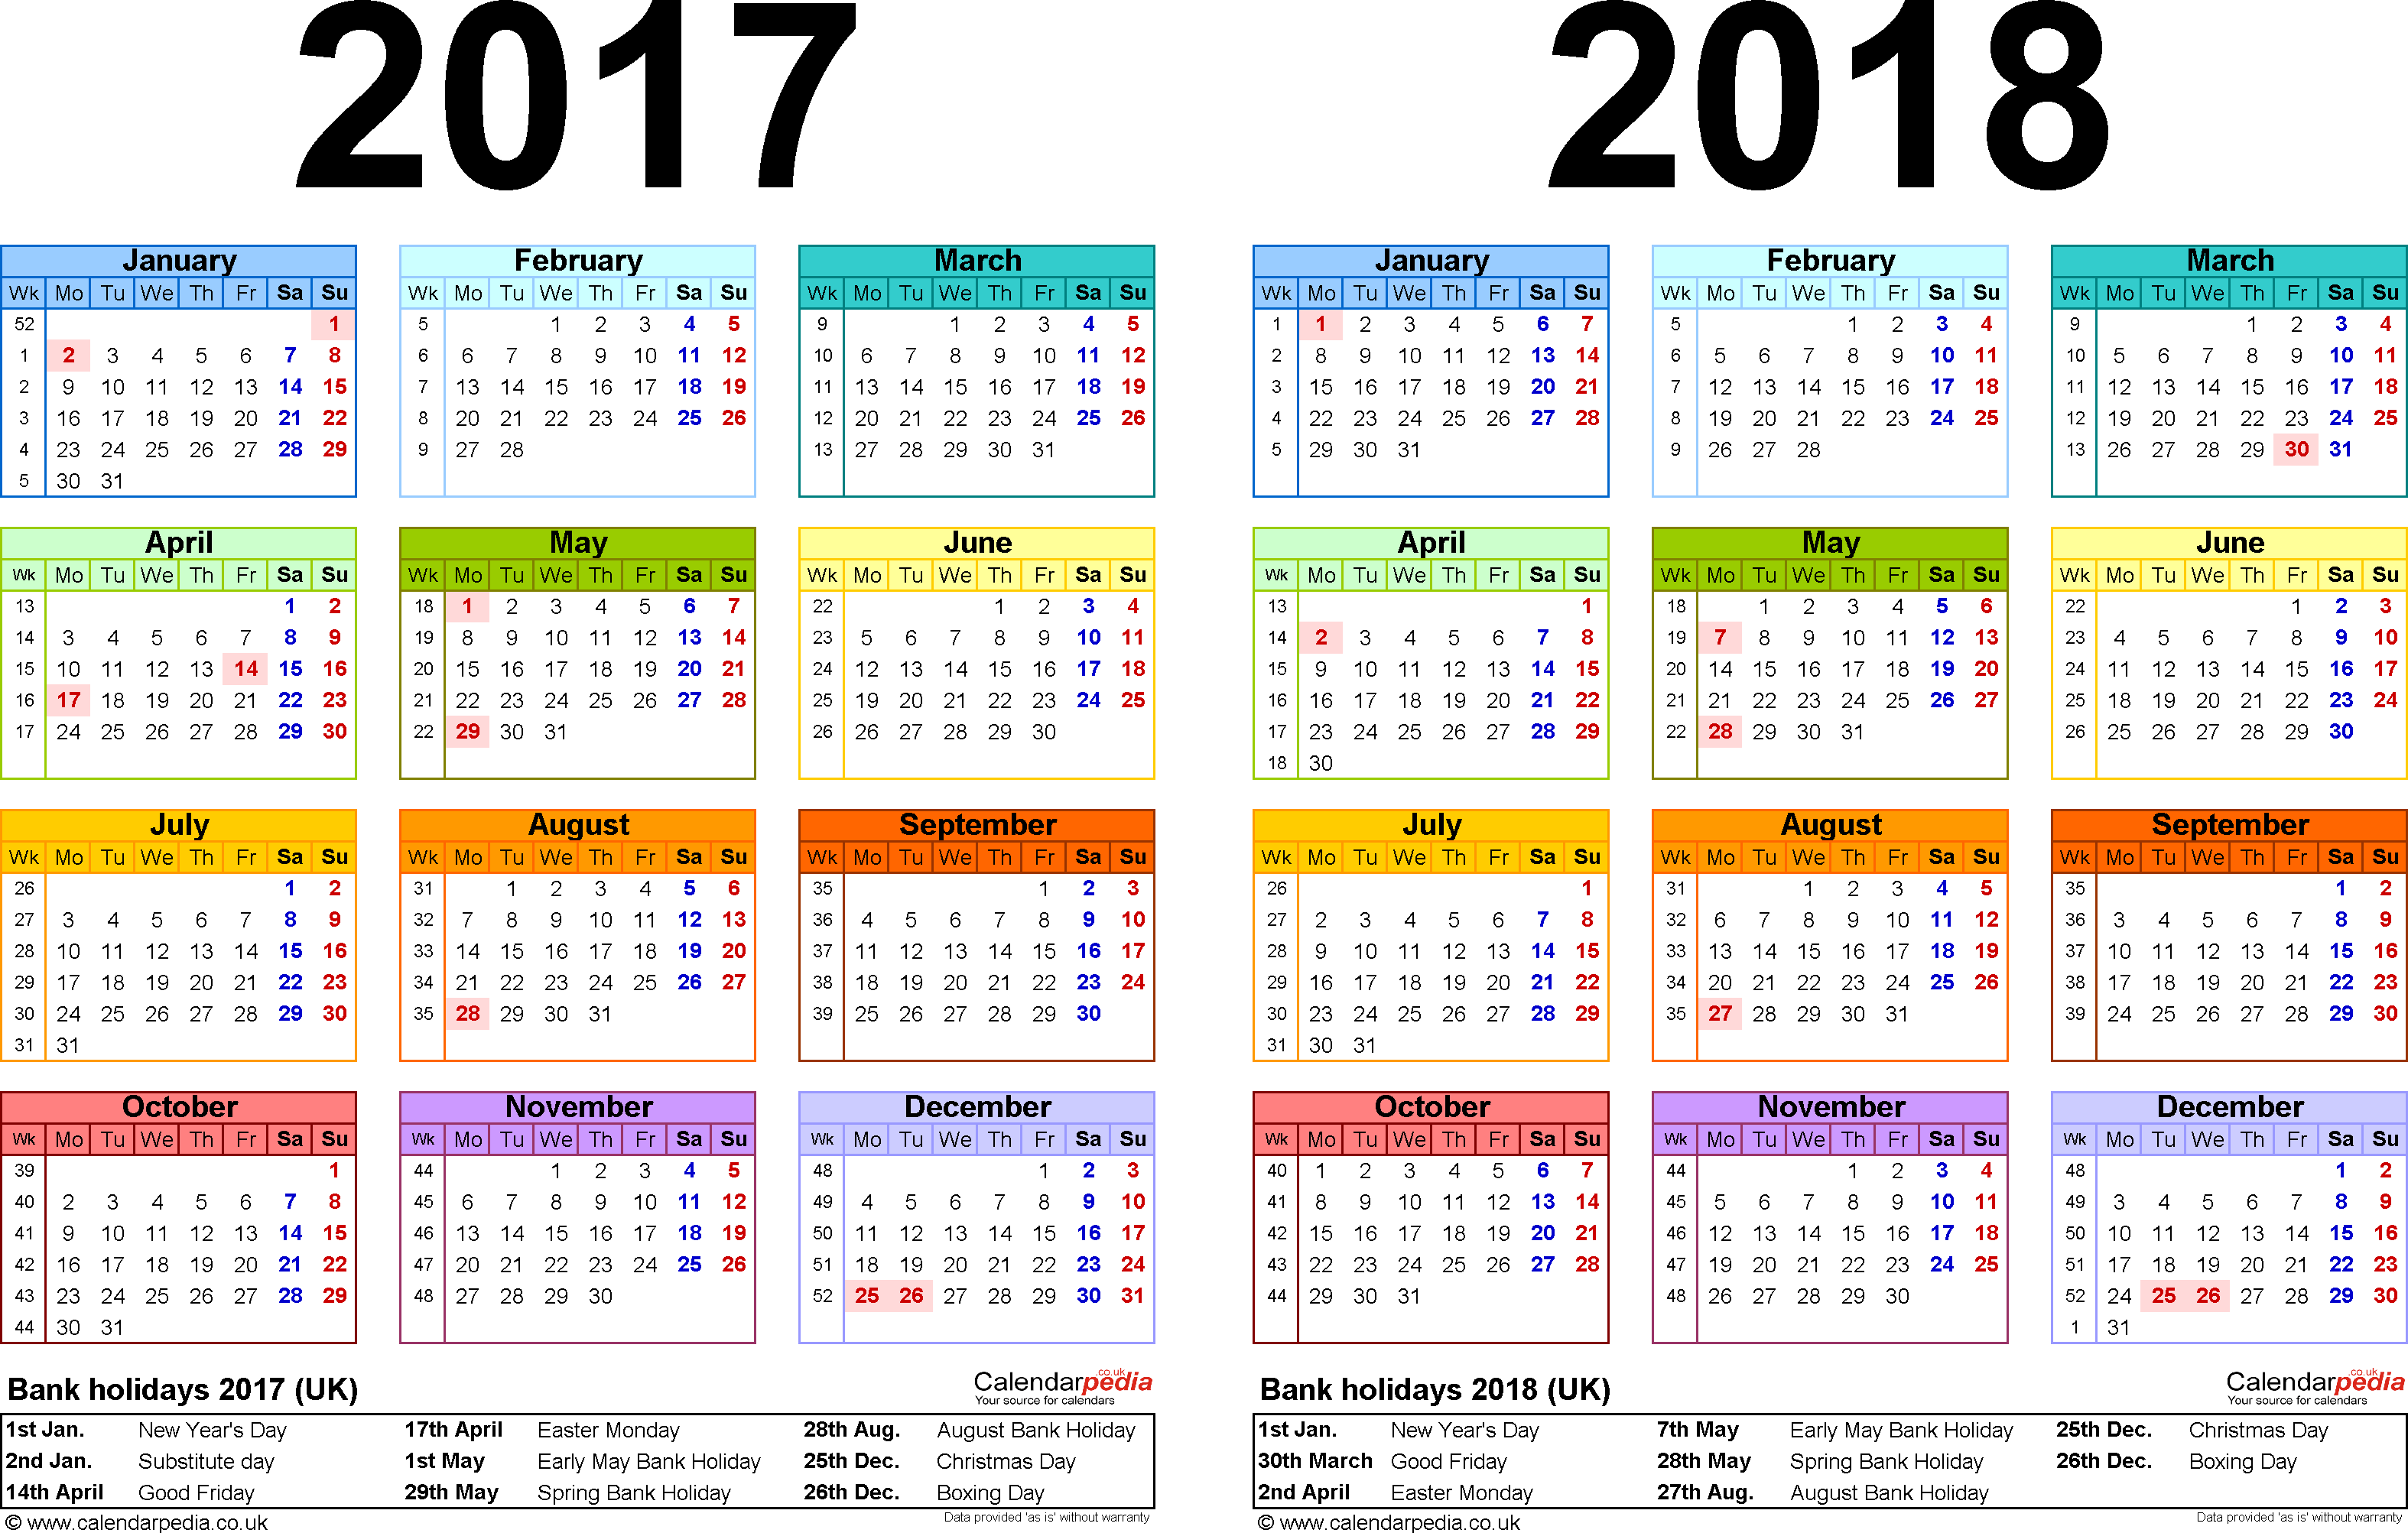 Download Template 2: Word template for two year calendar 2017/2018 in colour (landscape orientation, 1 page, A4)